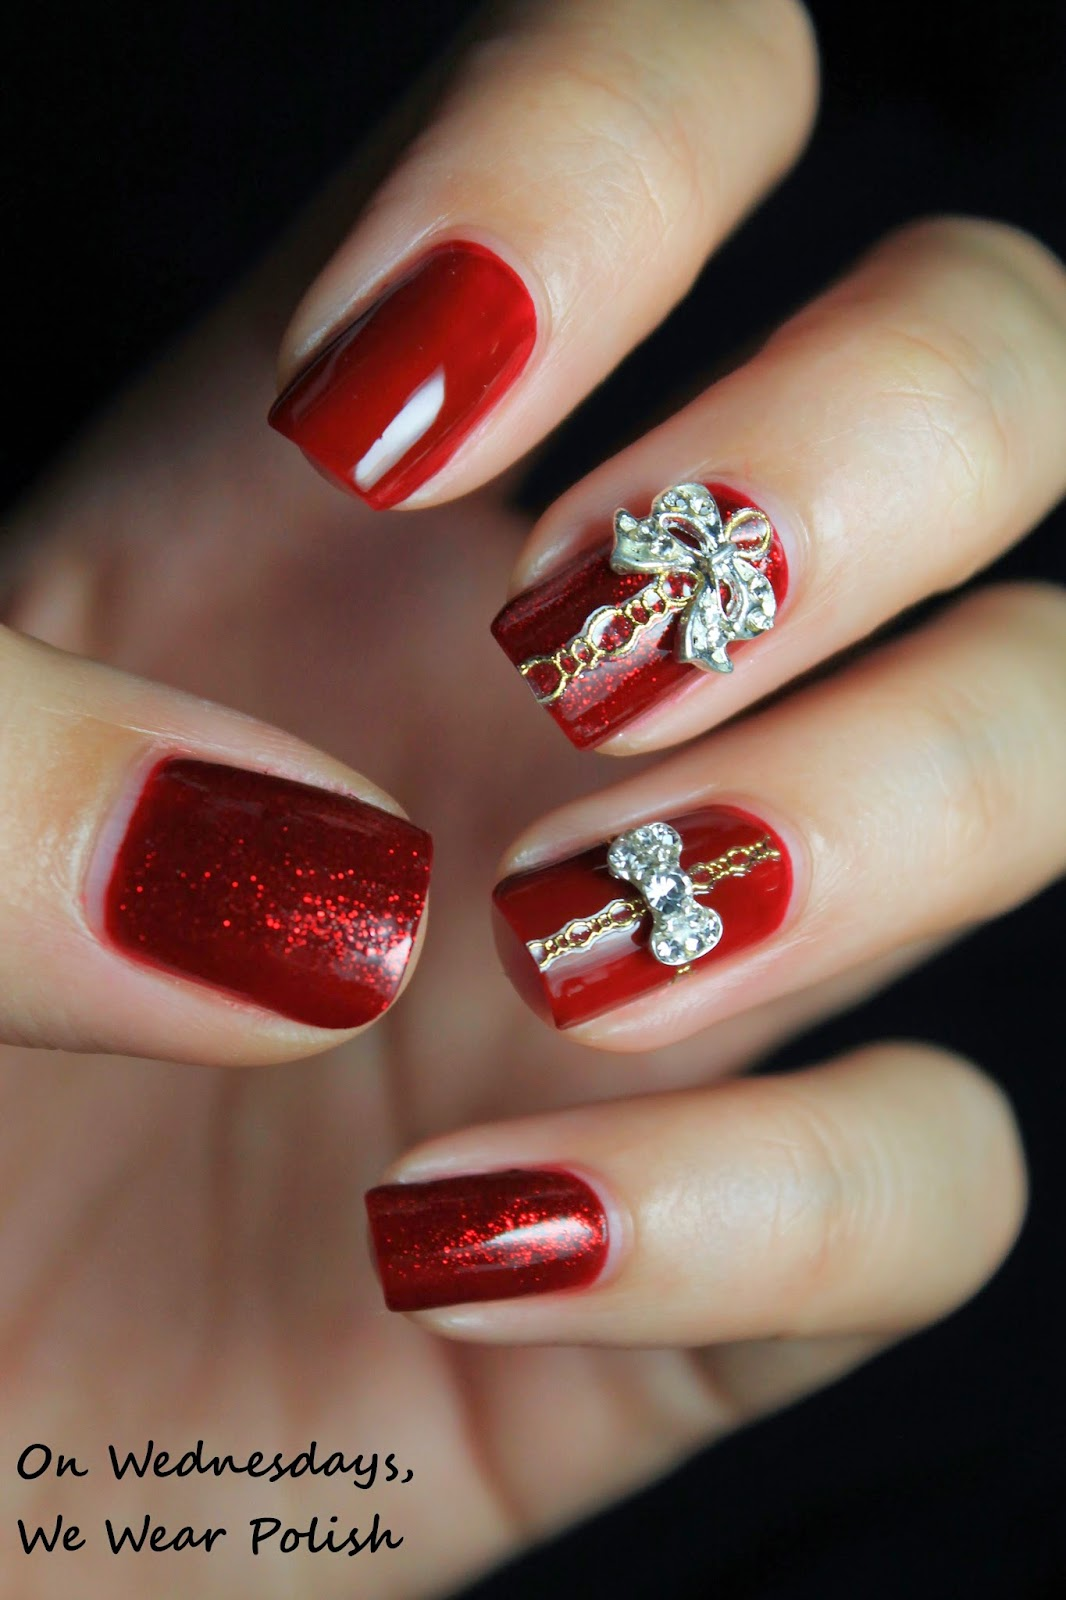 On Wednesdays, We Wear Polish : \'Tis the Season for Holiday Nail Art